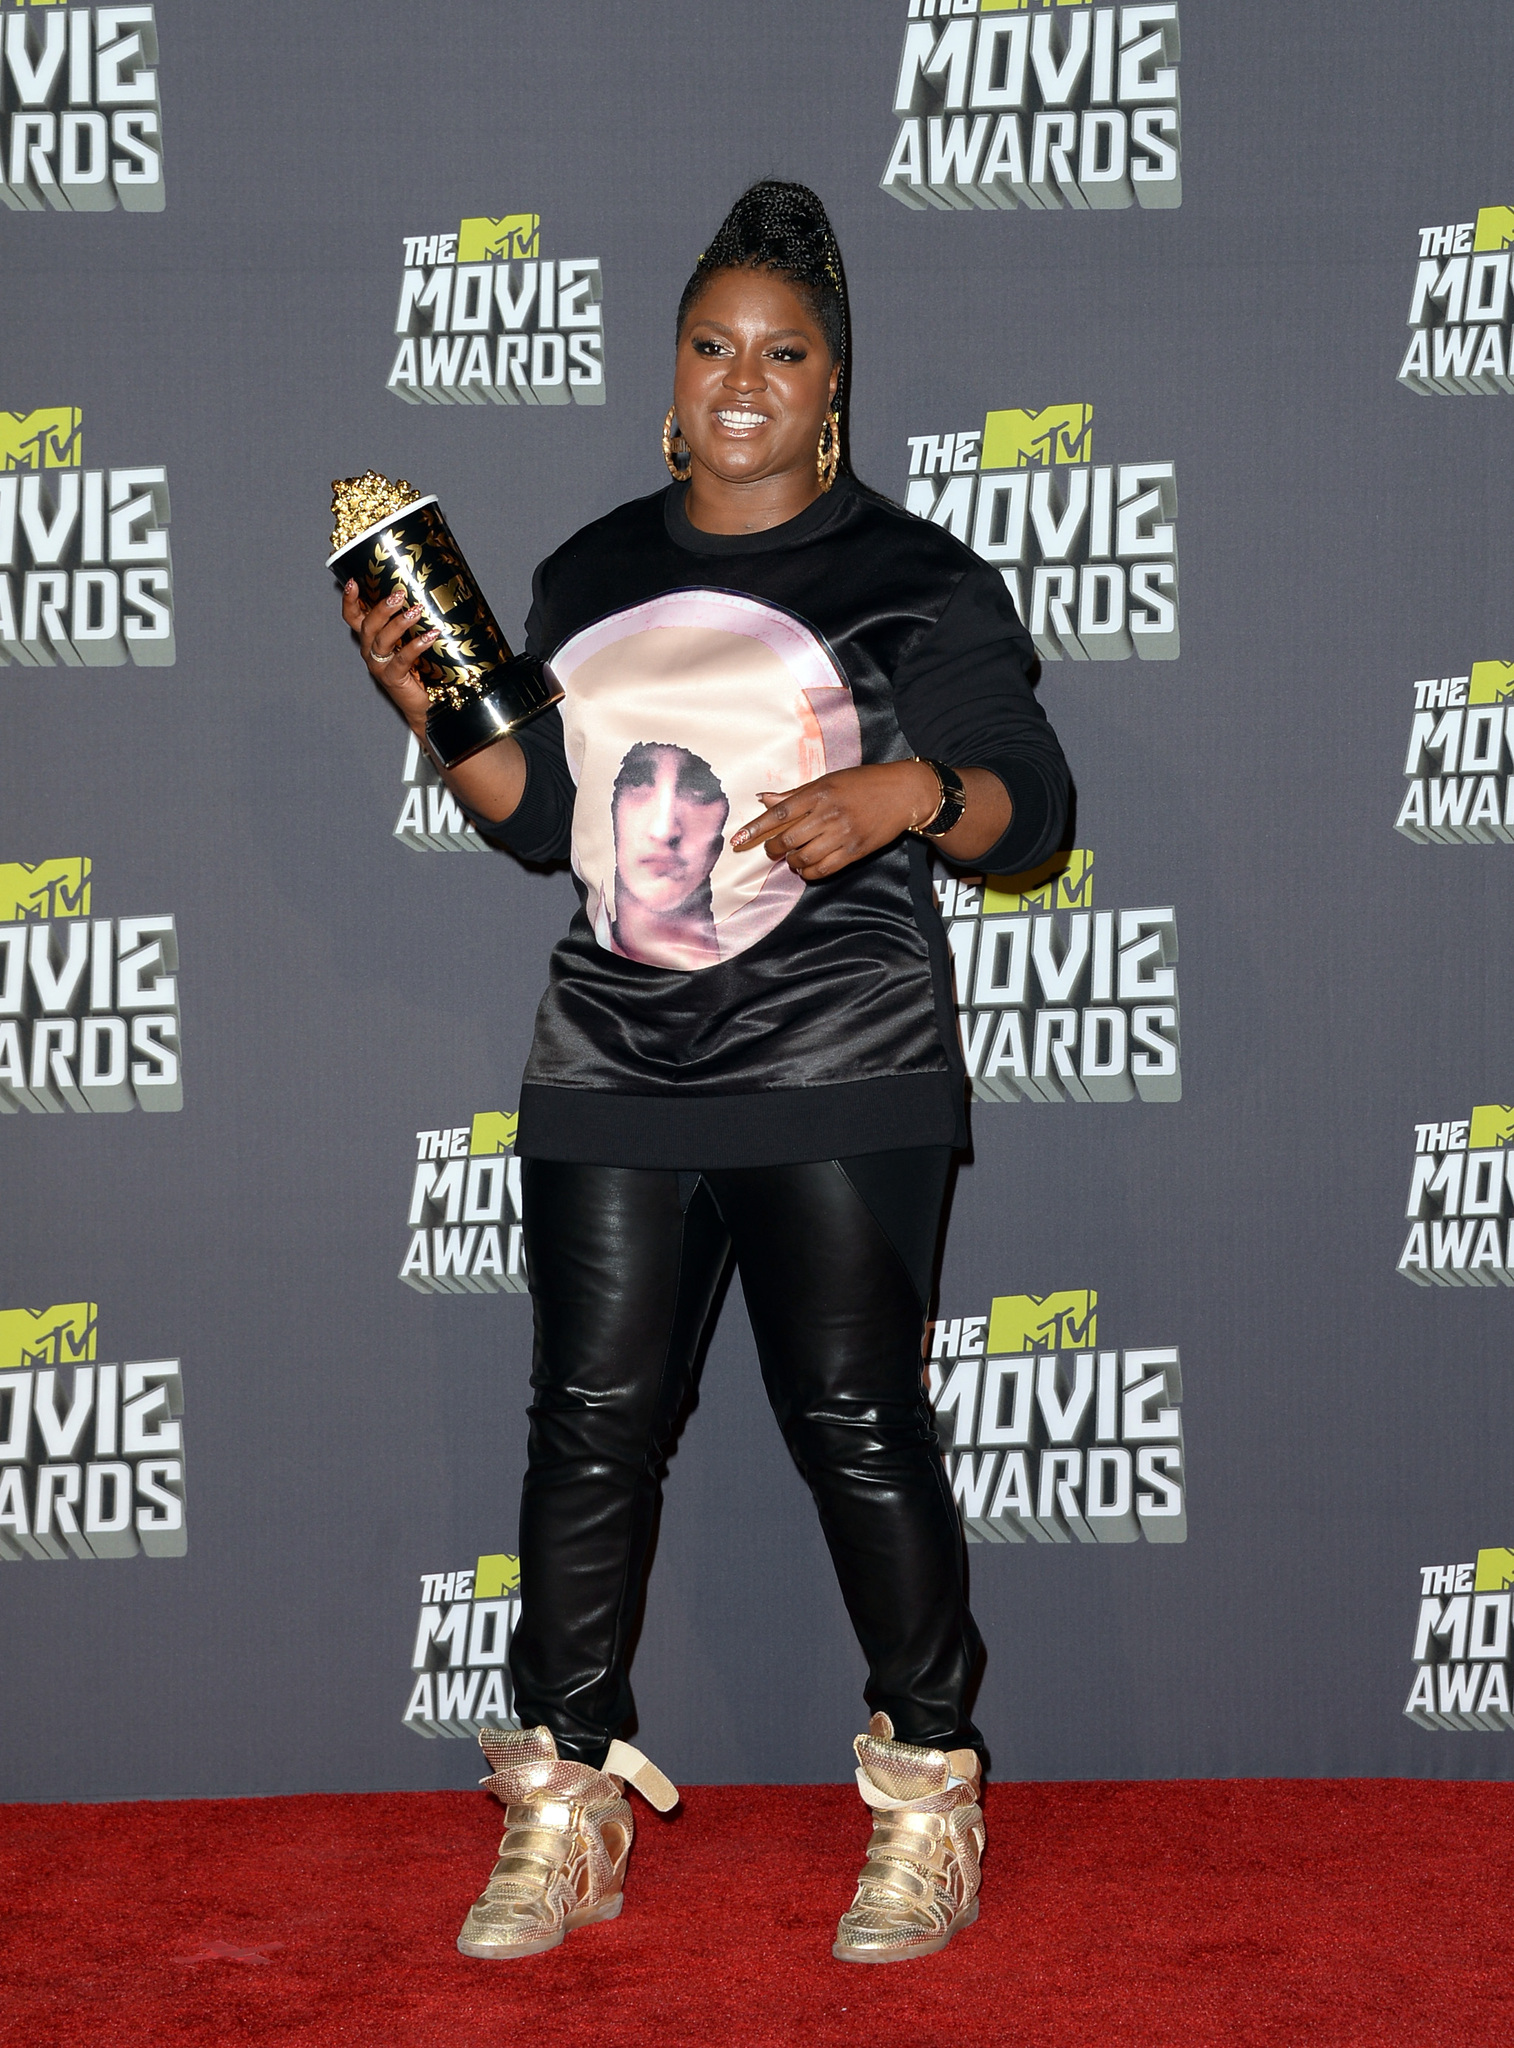 Discussion on this topic: Jessie Busley, ester-dean/